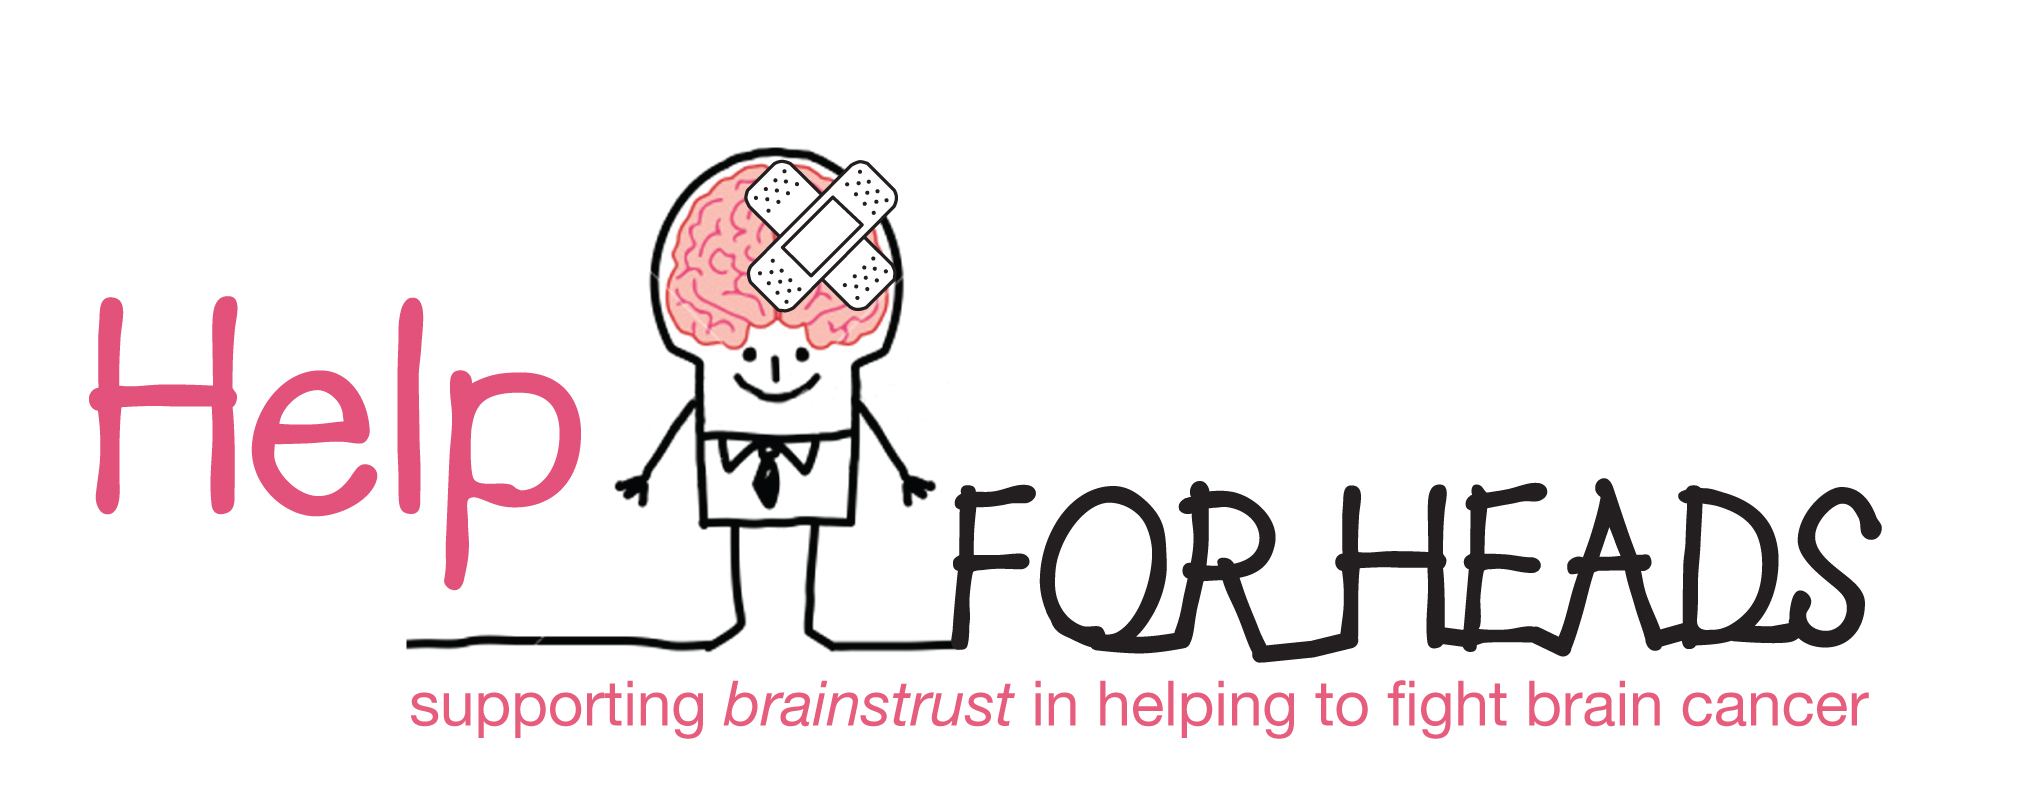 Help for heads raising funds for brain tumour support